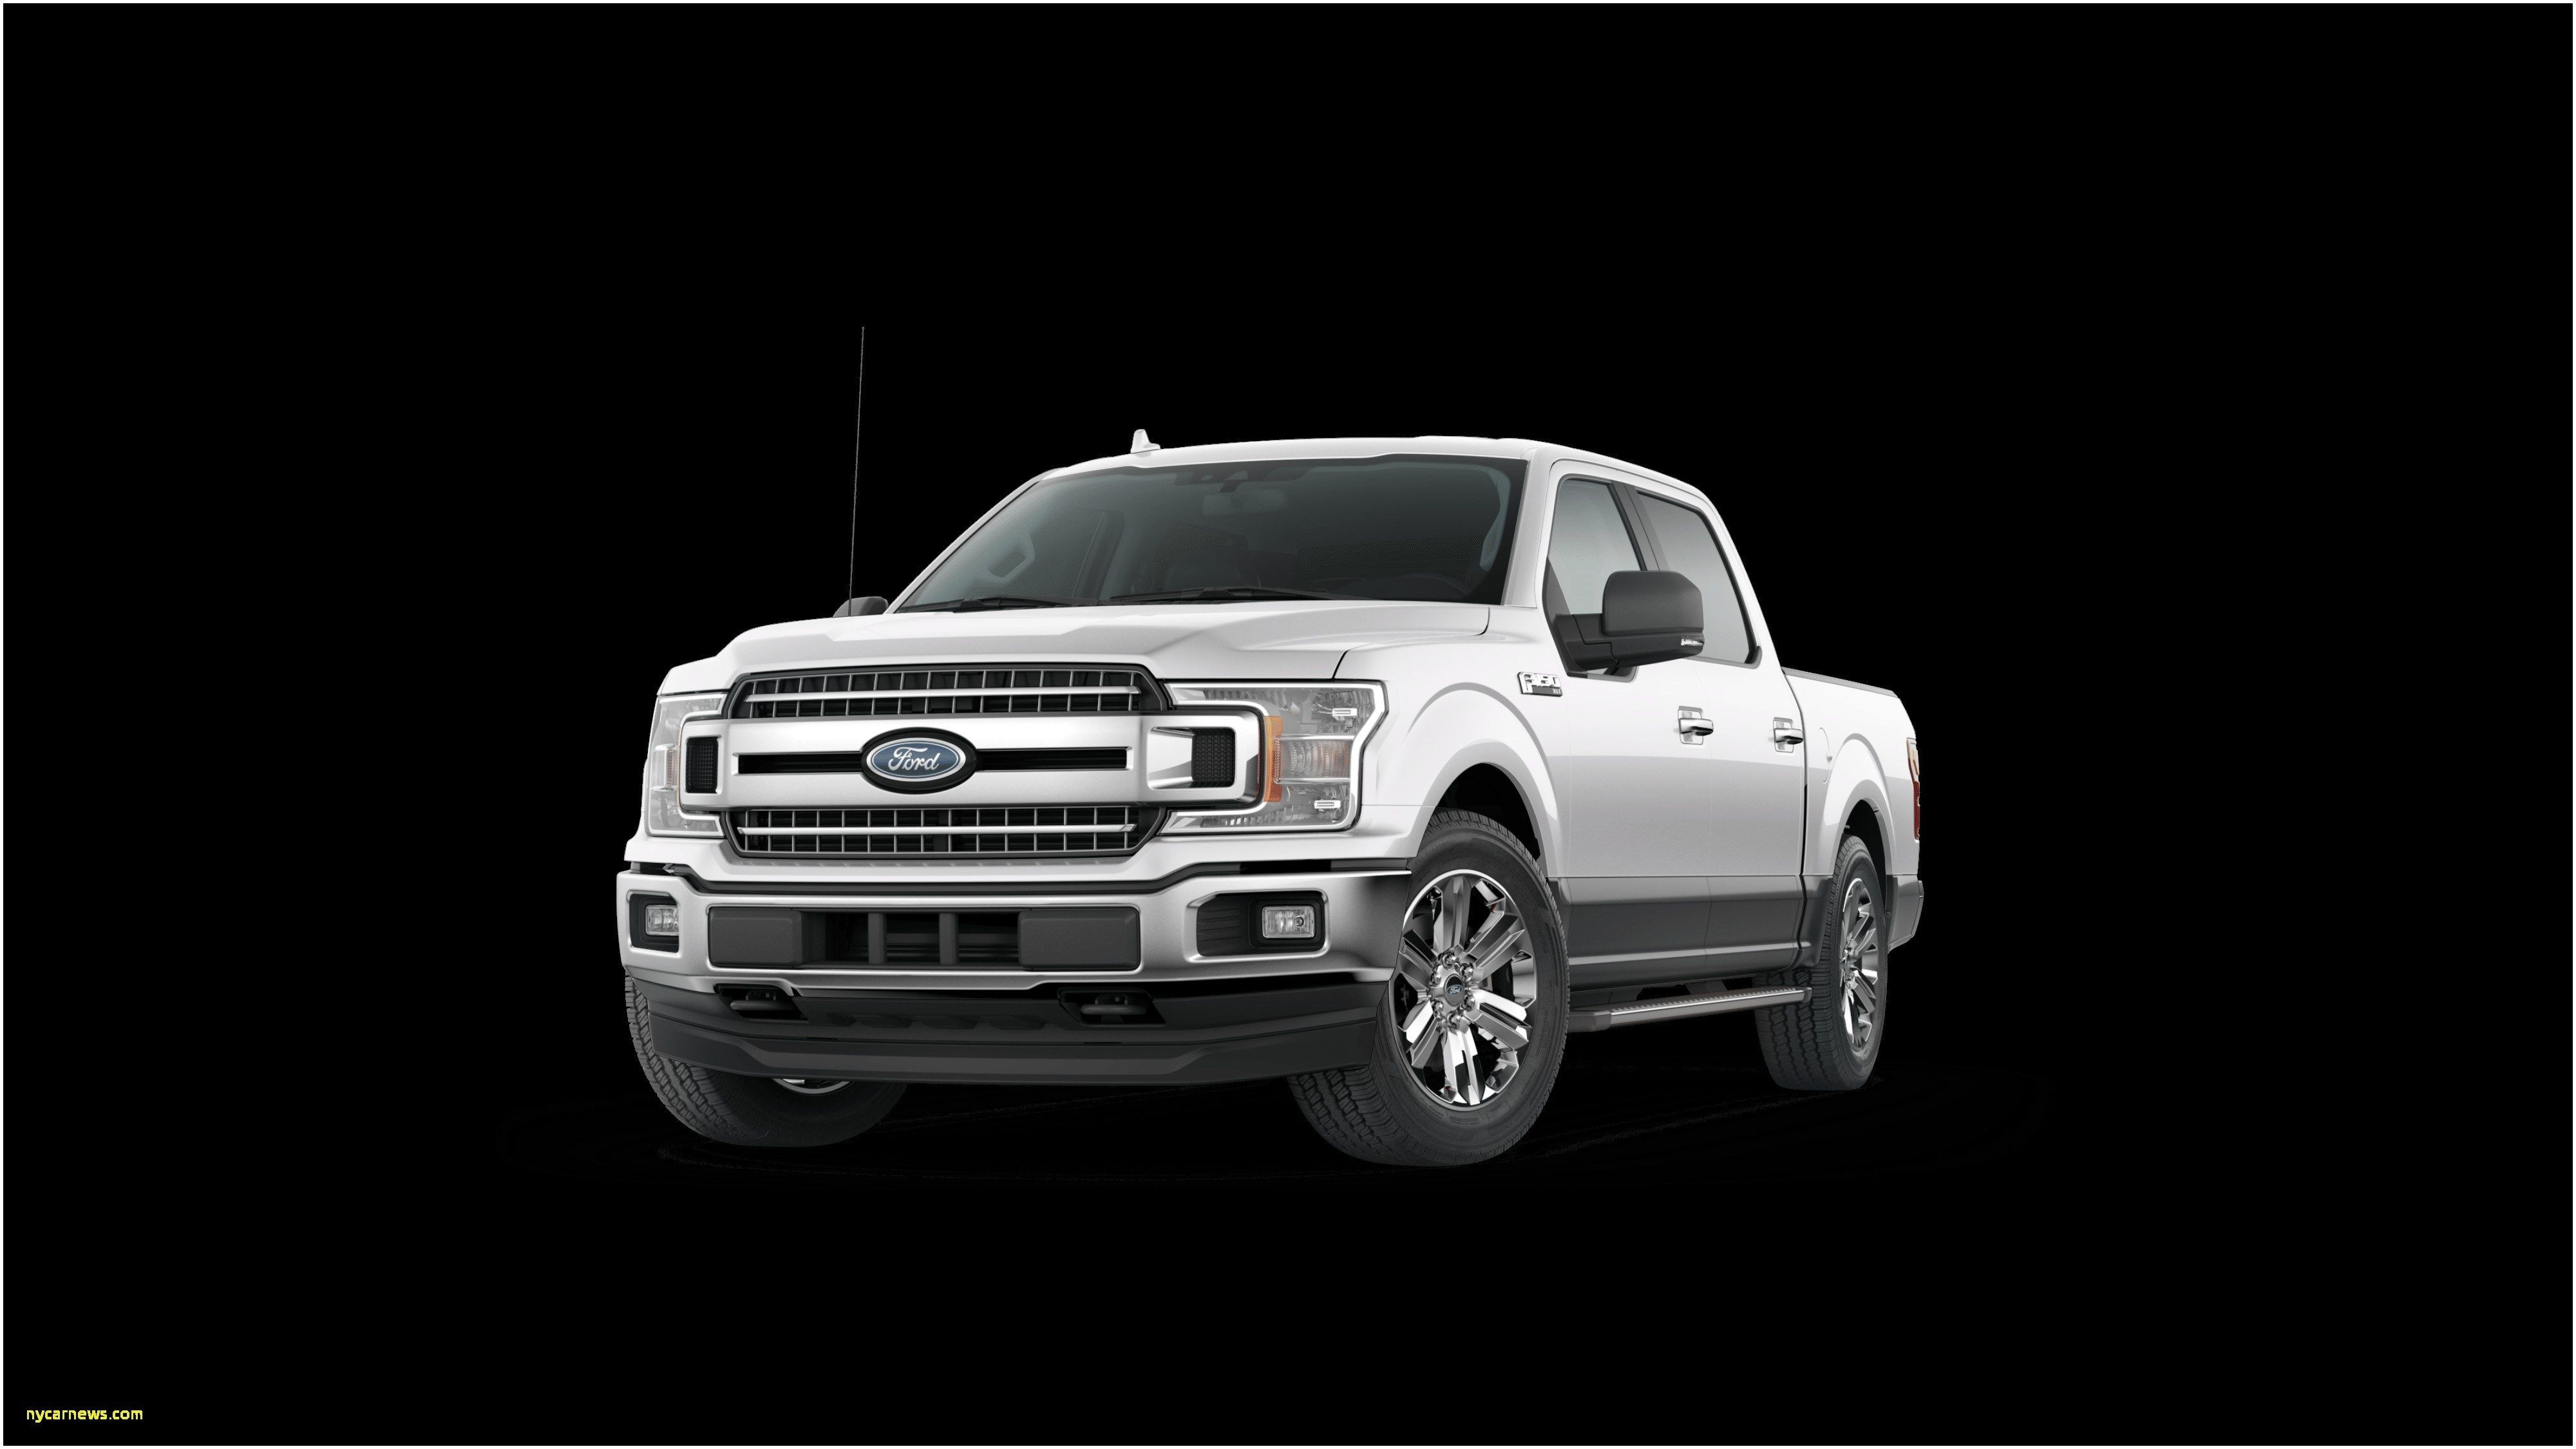 New Ford Electric Car Lease Deals Ford Electric Car Ford F150 Ford Mustang Convertible